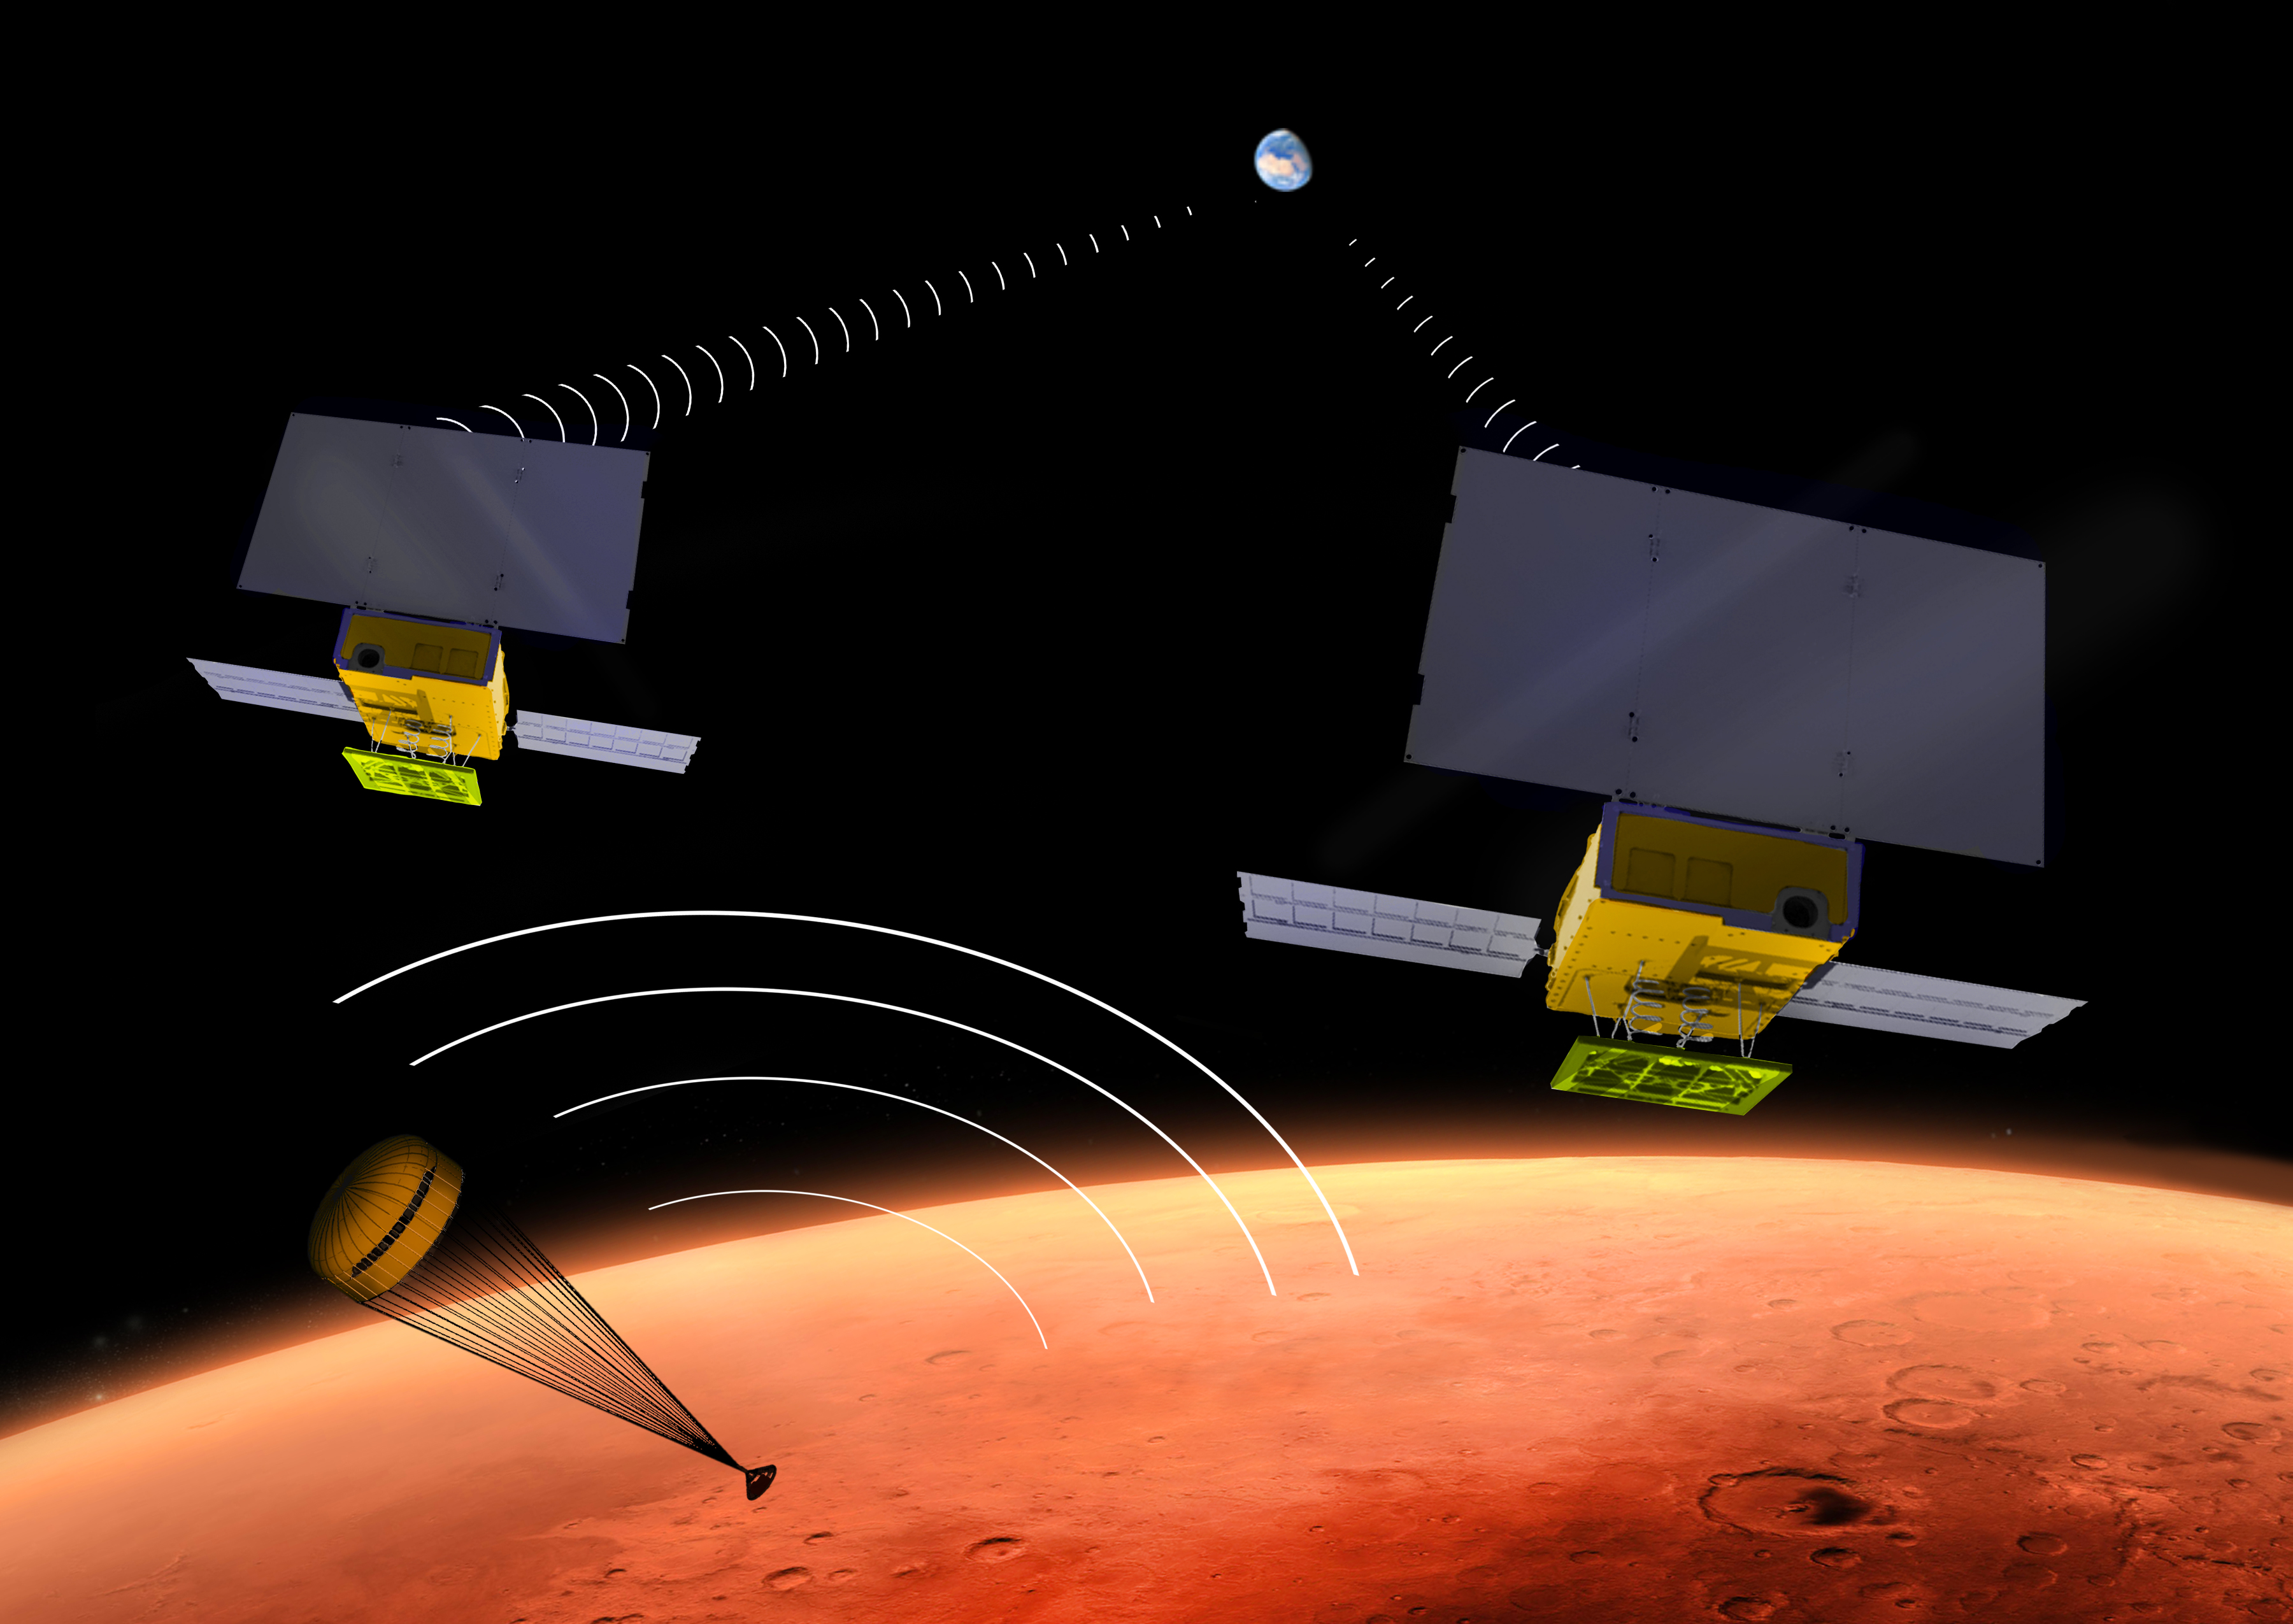 NASA prepares to send the first interplanetary cubsats to Mars 54